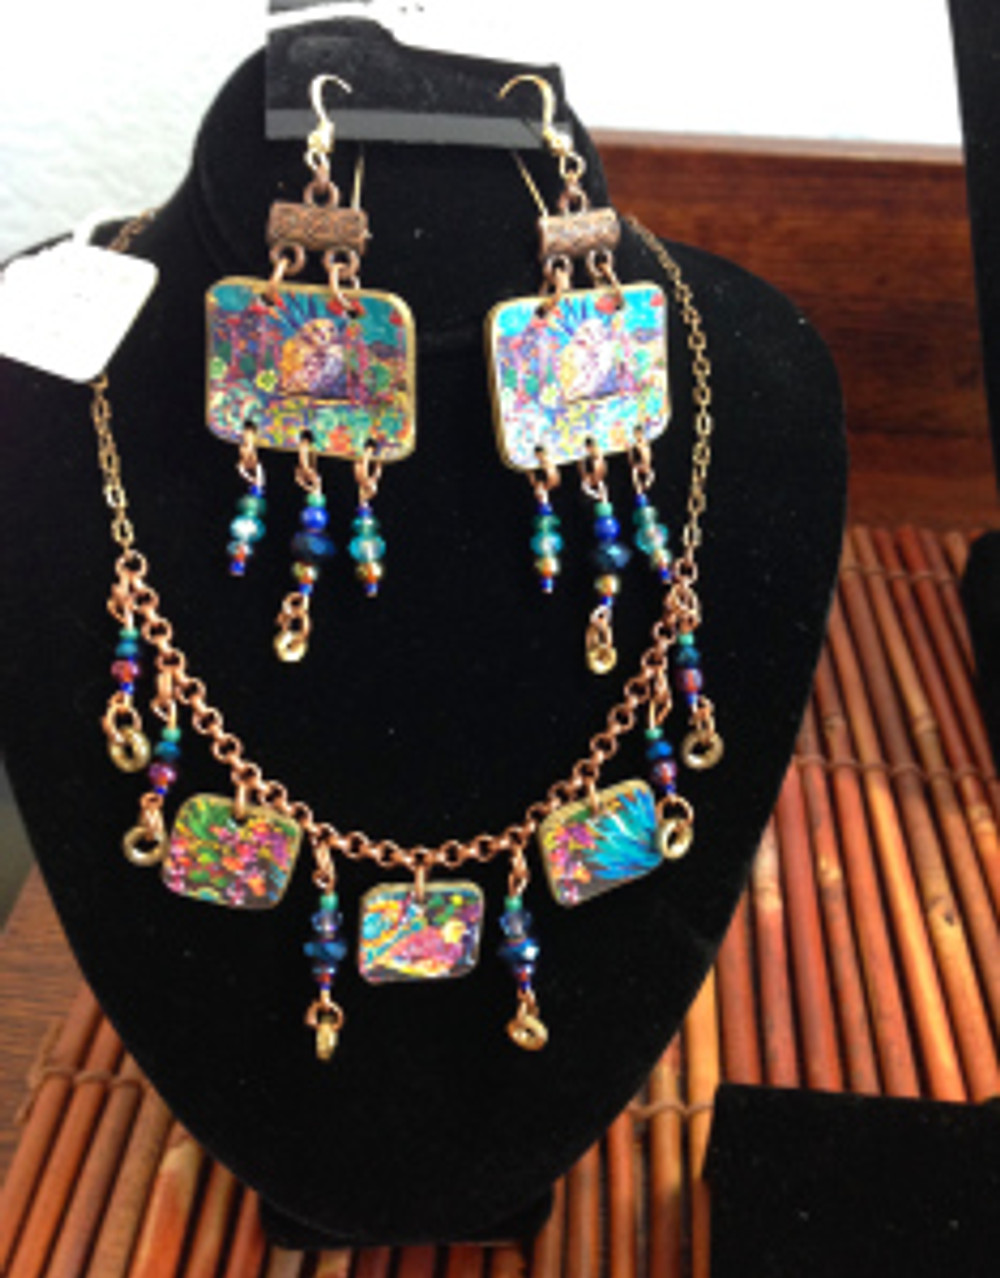 Painted Jewelry by Cathy Carey - made from her paintings